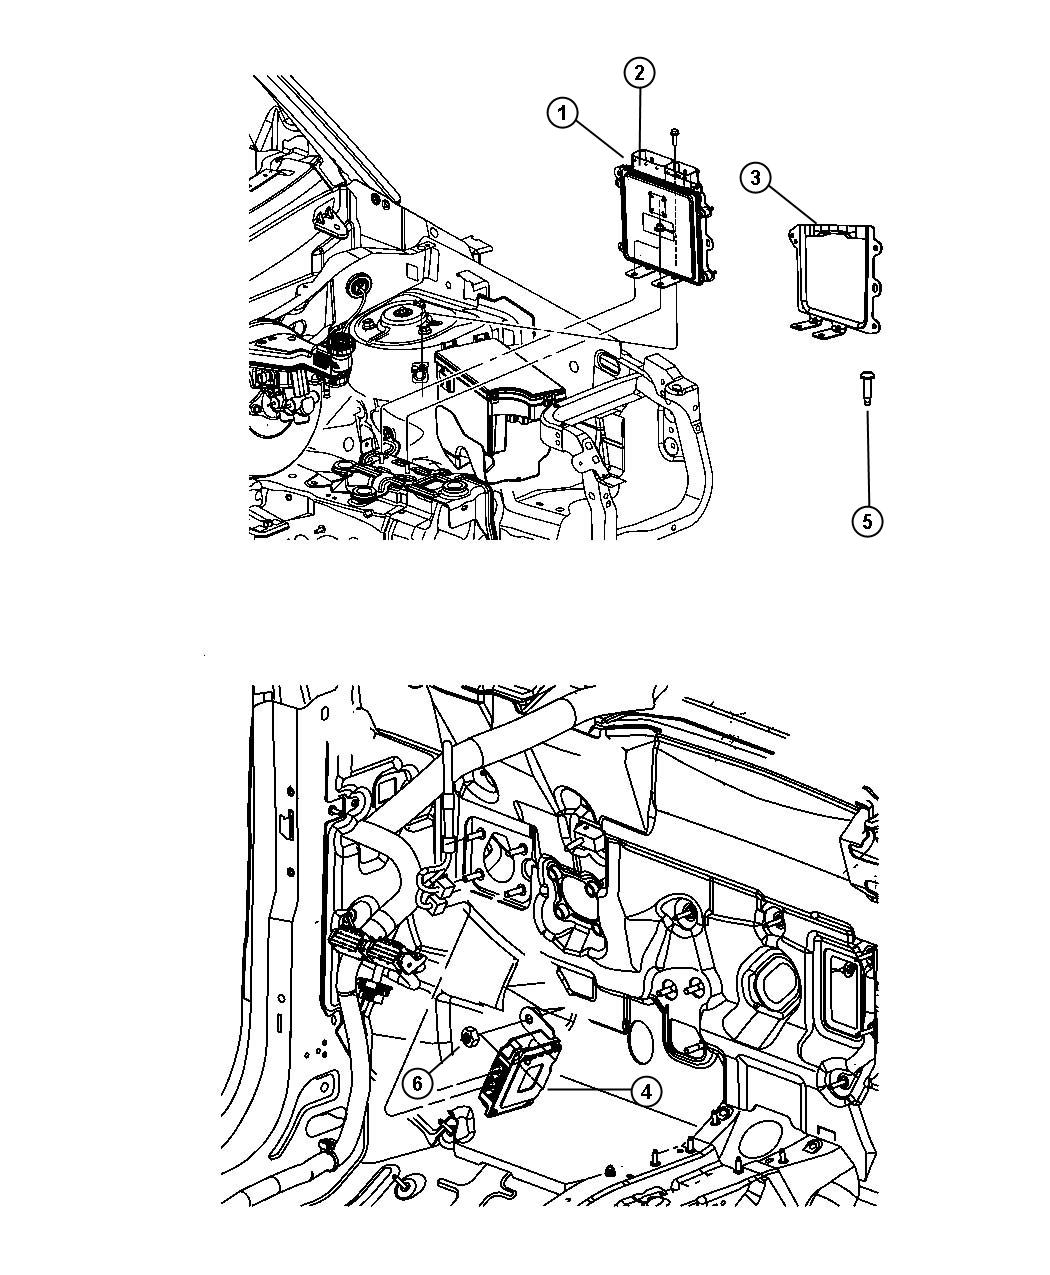 Jeep Compass Module. Engine controller. Diesel. Electrical